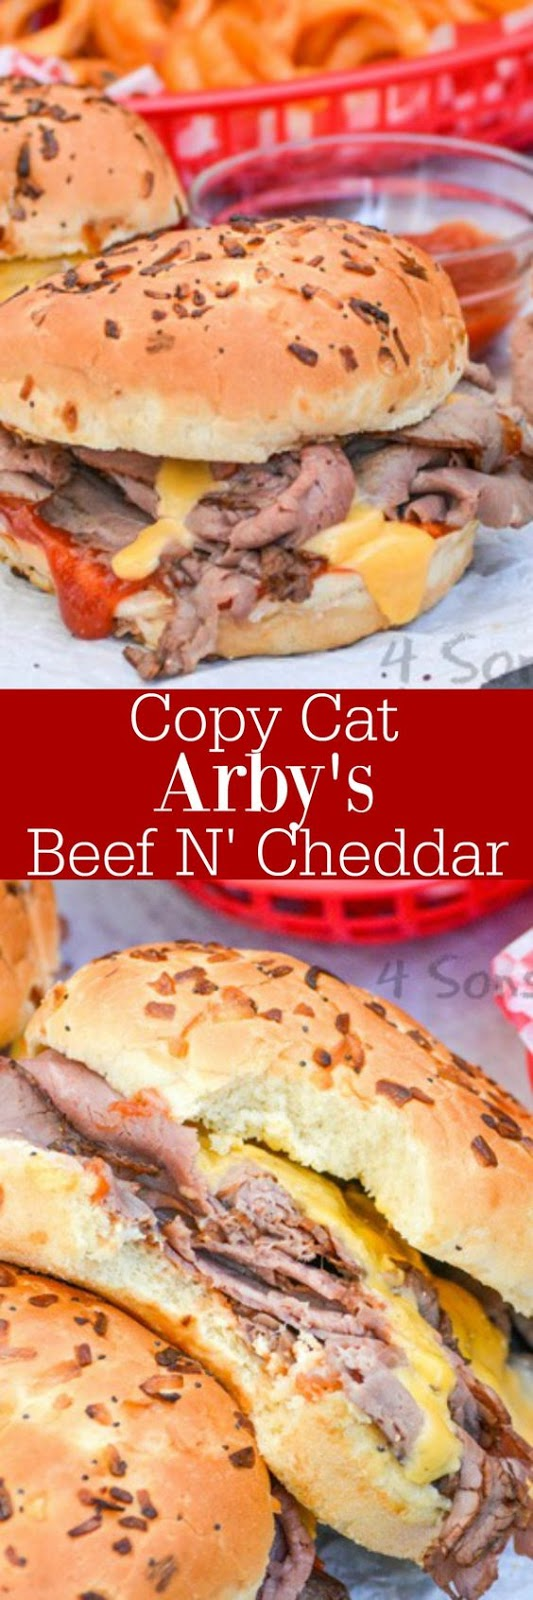 Copy Cat Arby's Beef N' Cheddar